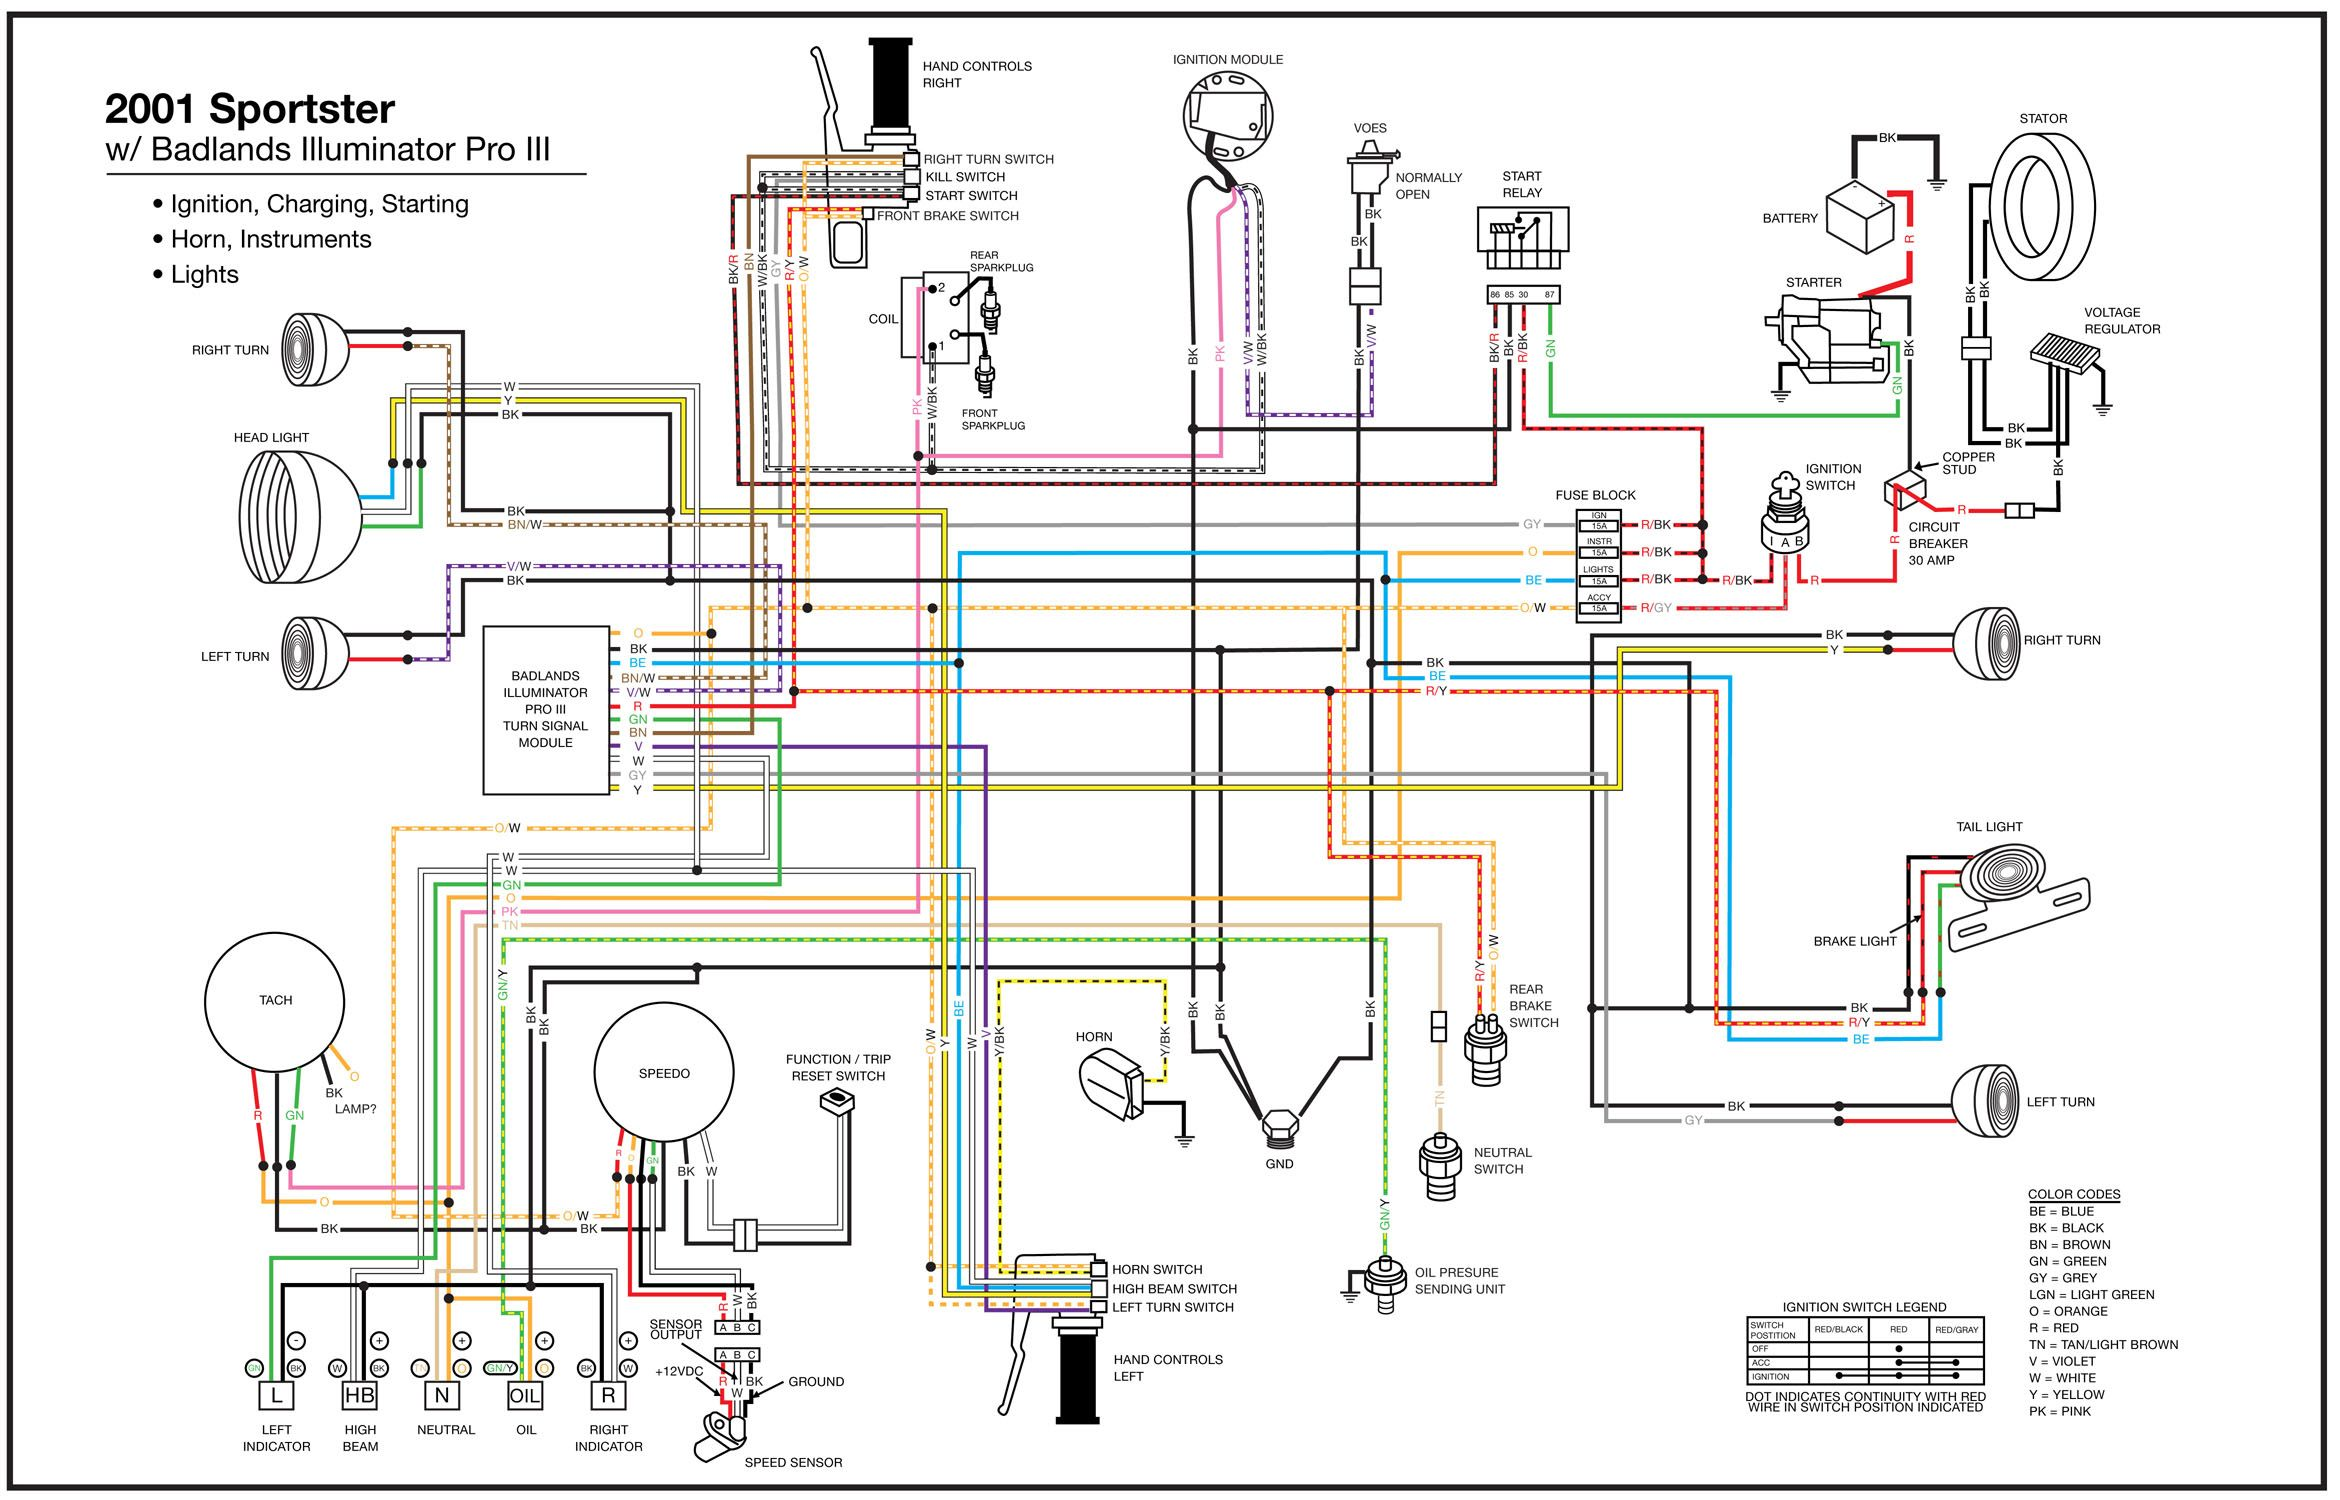 verucci wiring diagram schematics wiring diagrams \u2022 electric scooter controller wiring diagram chopper 49cc wiring diagram honda wiring diagram verucci wiring rh banyan palace com verucci scooter battery